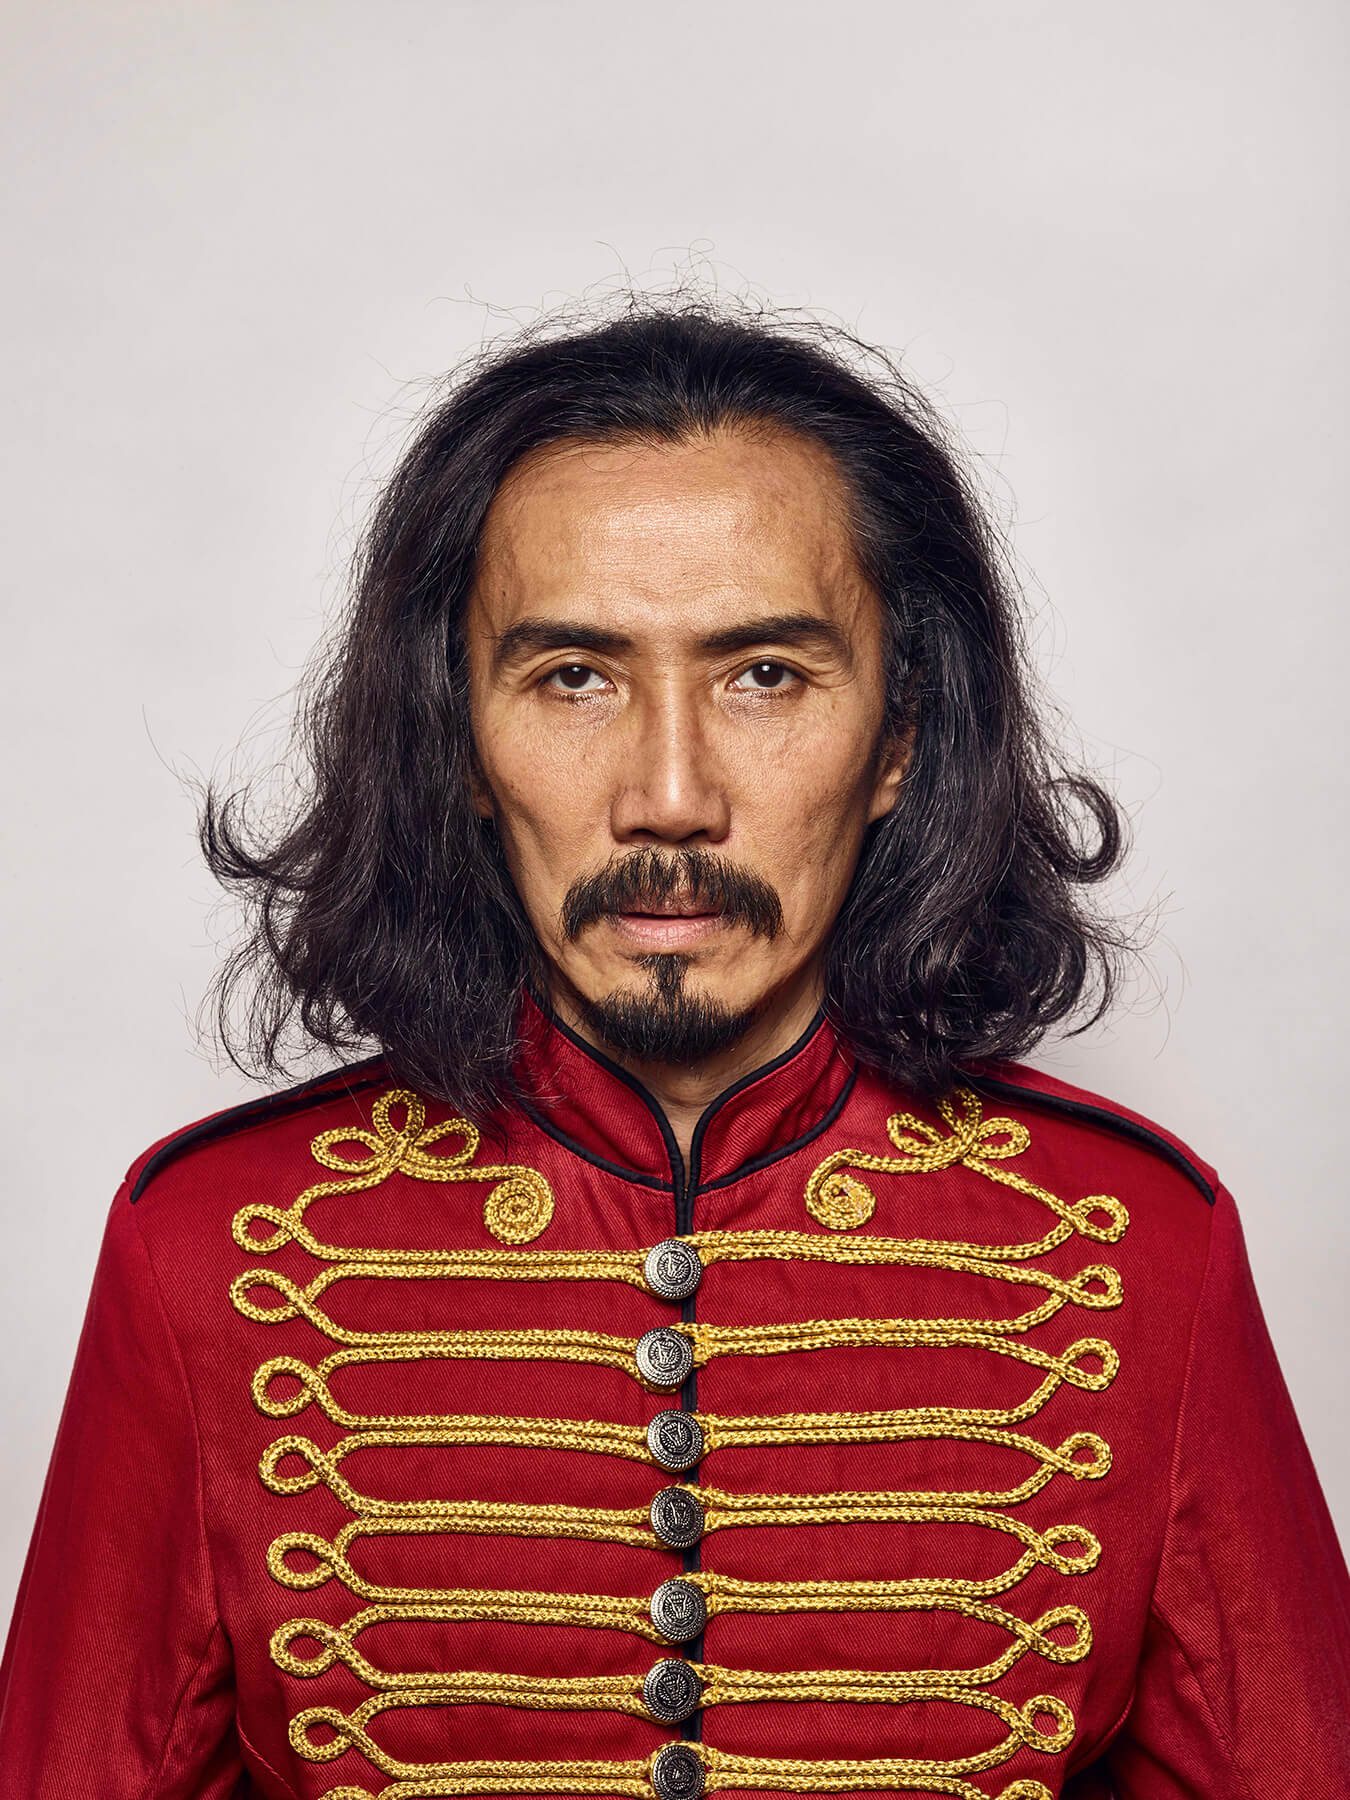 10 Sep 2017: Derong is styled as Sgt Pepper